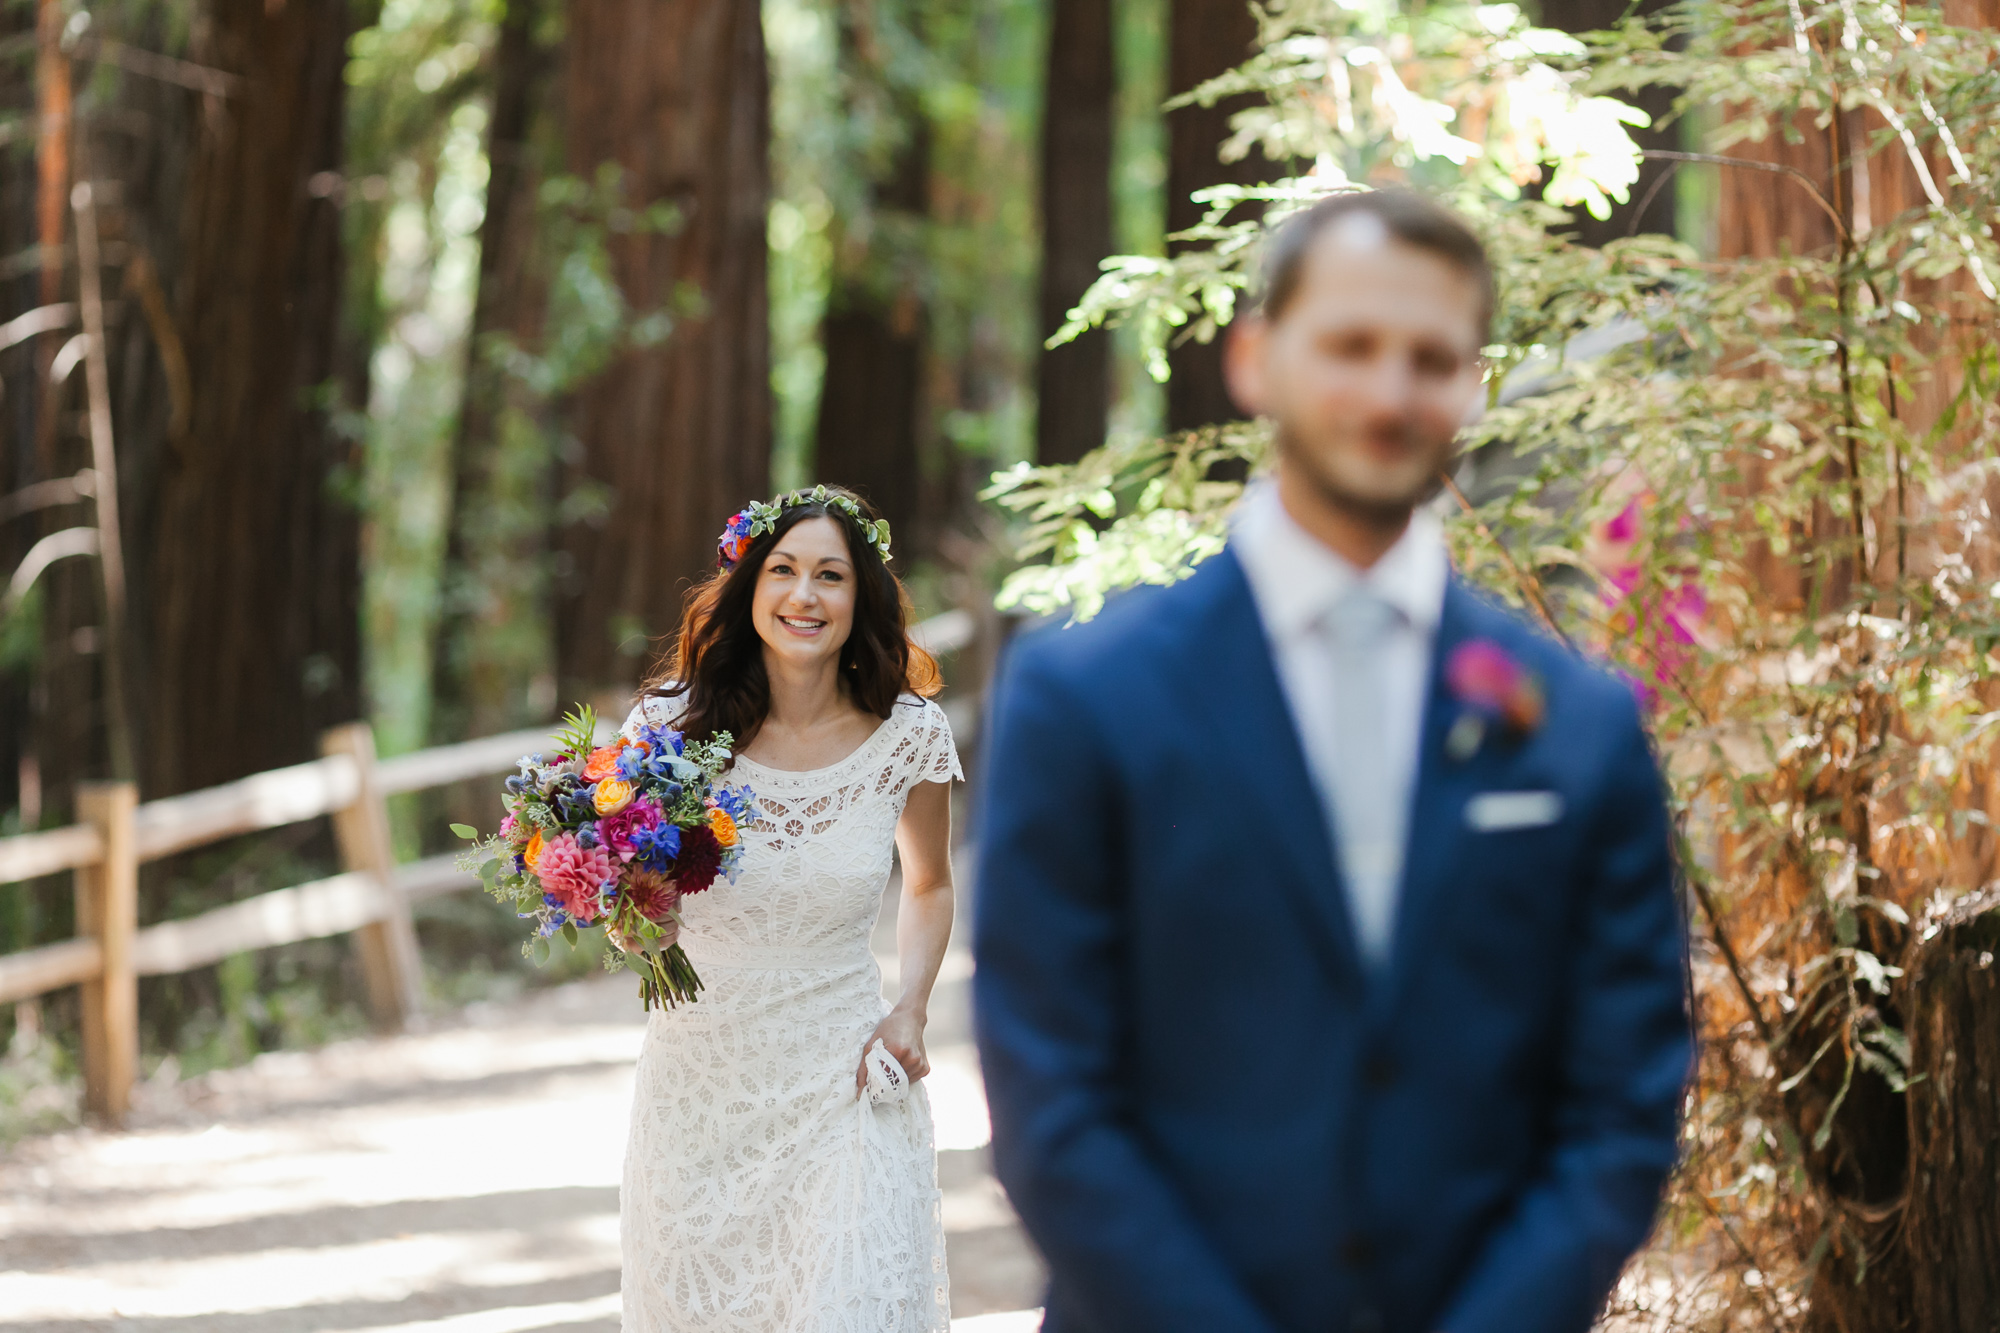 Bride with colorful bouquet walks up to her soon to be husband for their first look